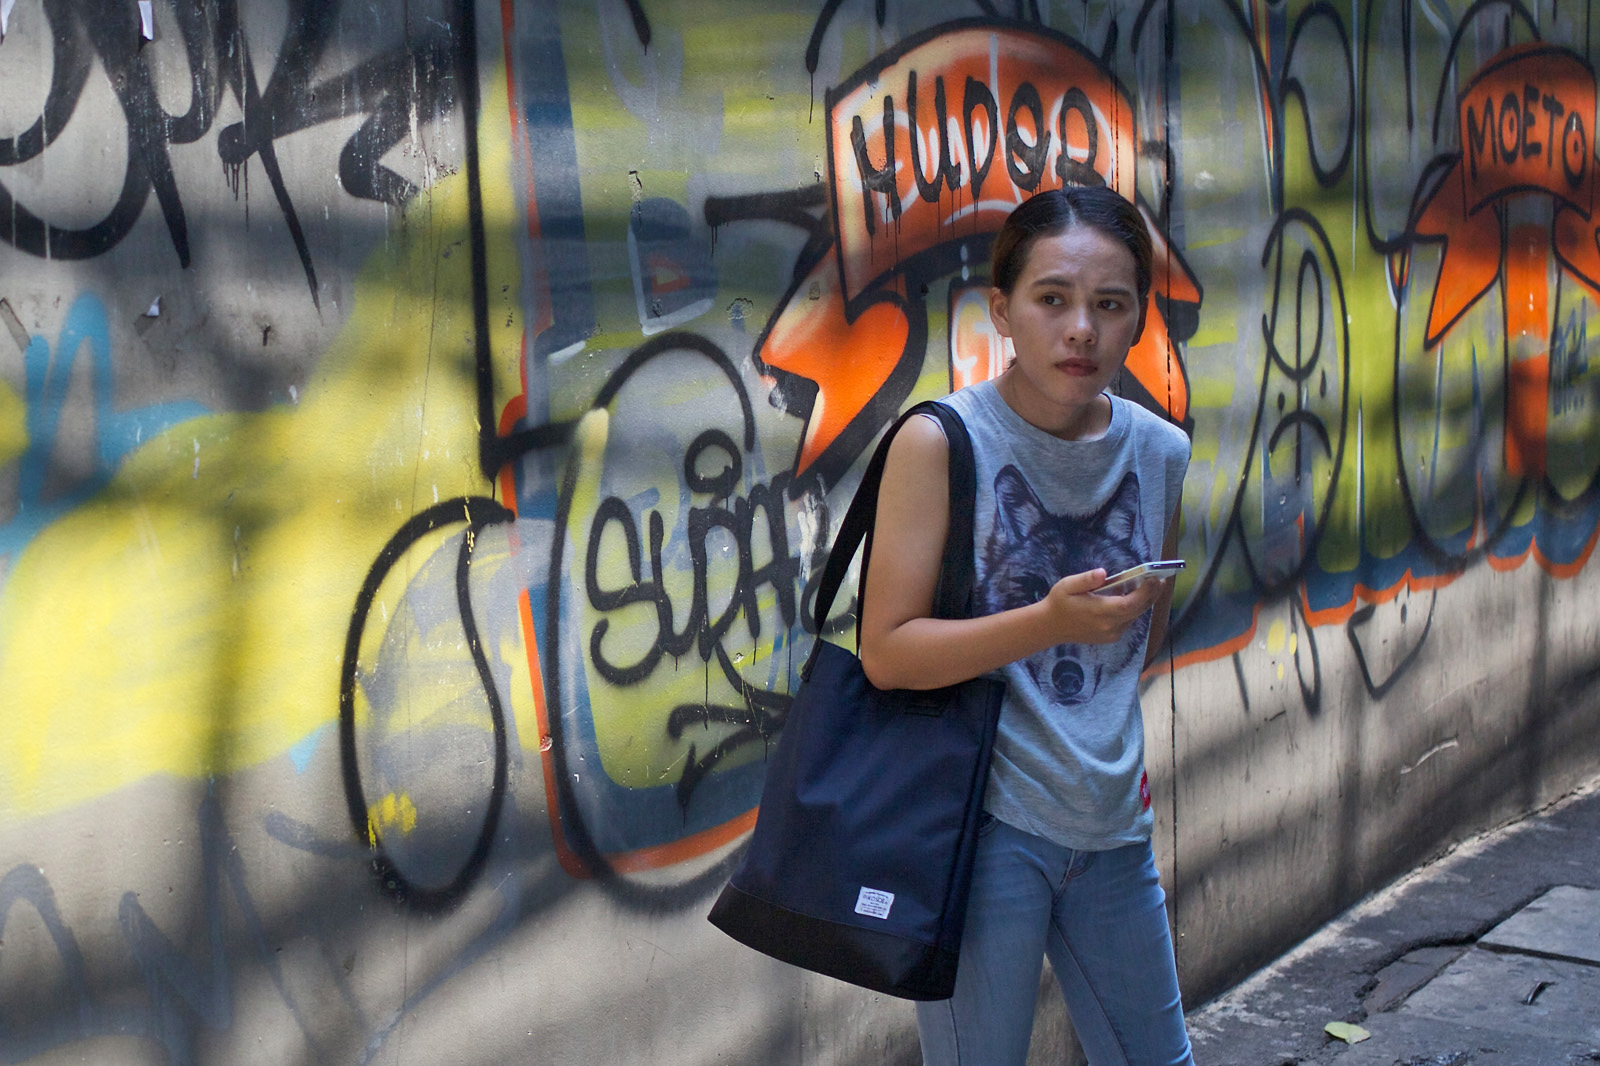 Woman looking anxious in front of graffiti scrawls